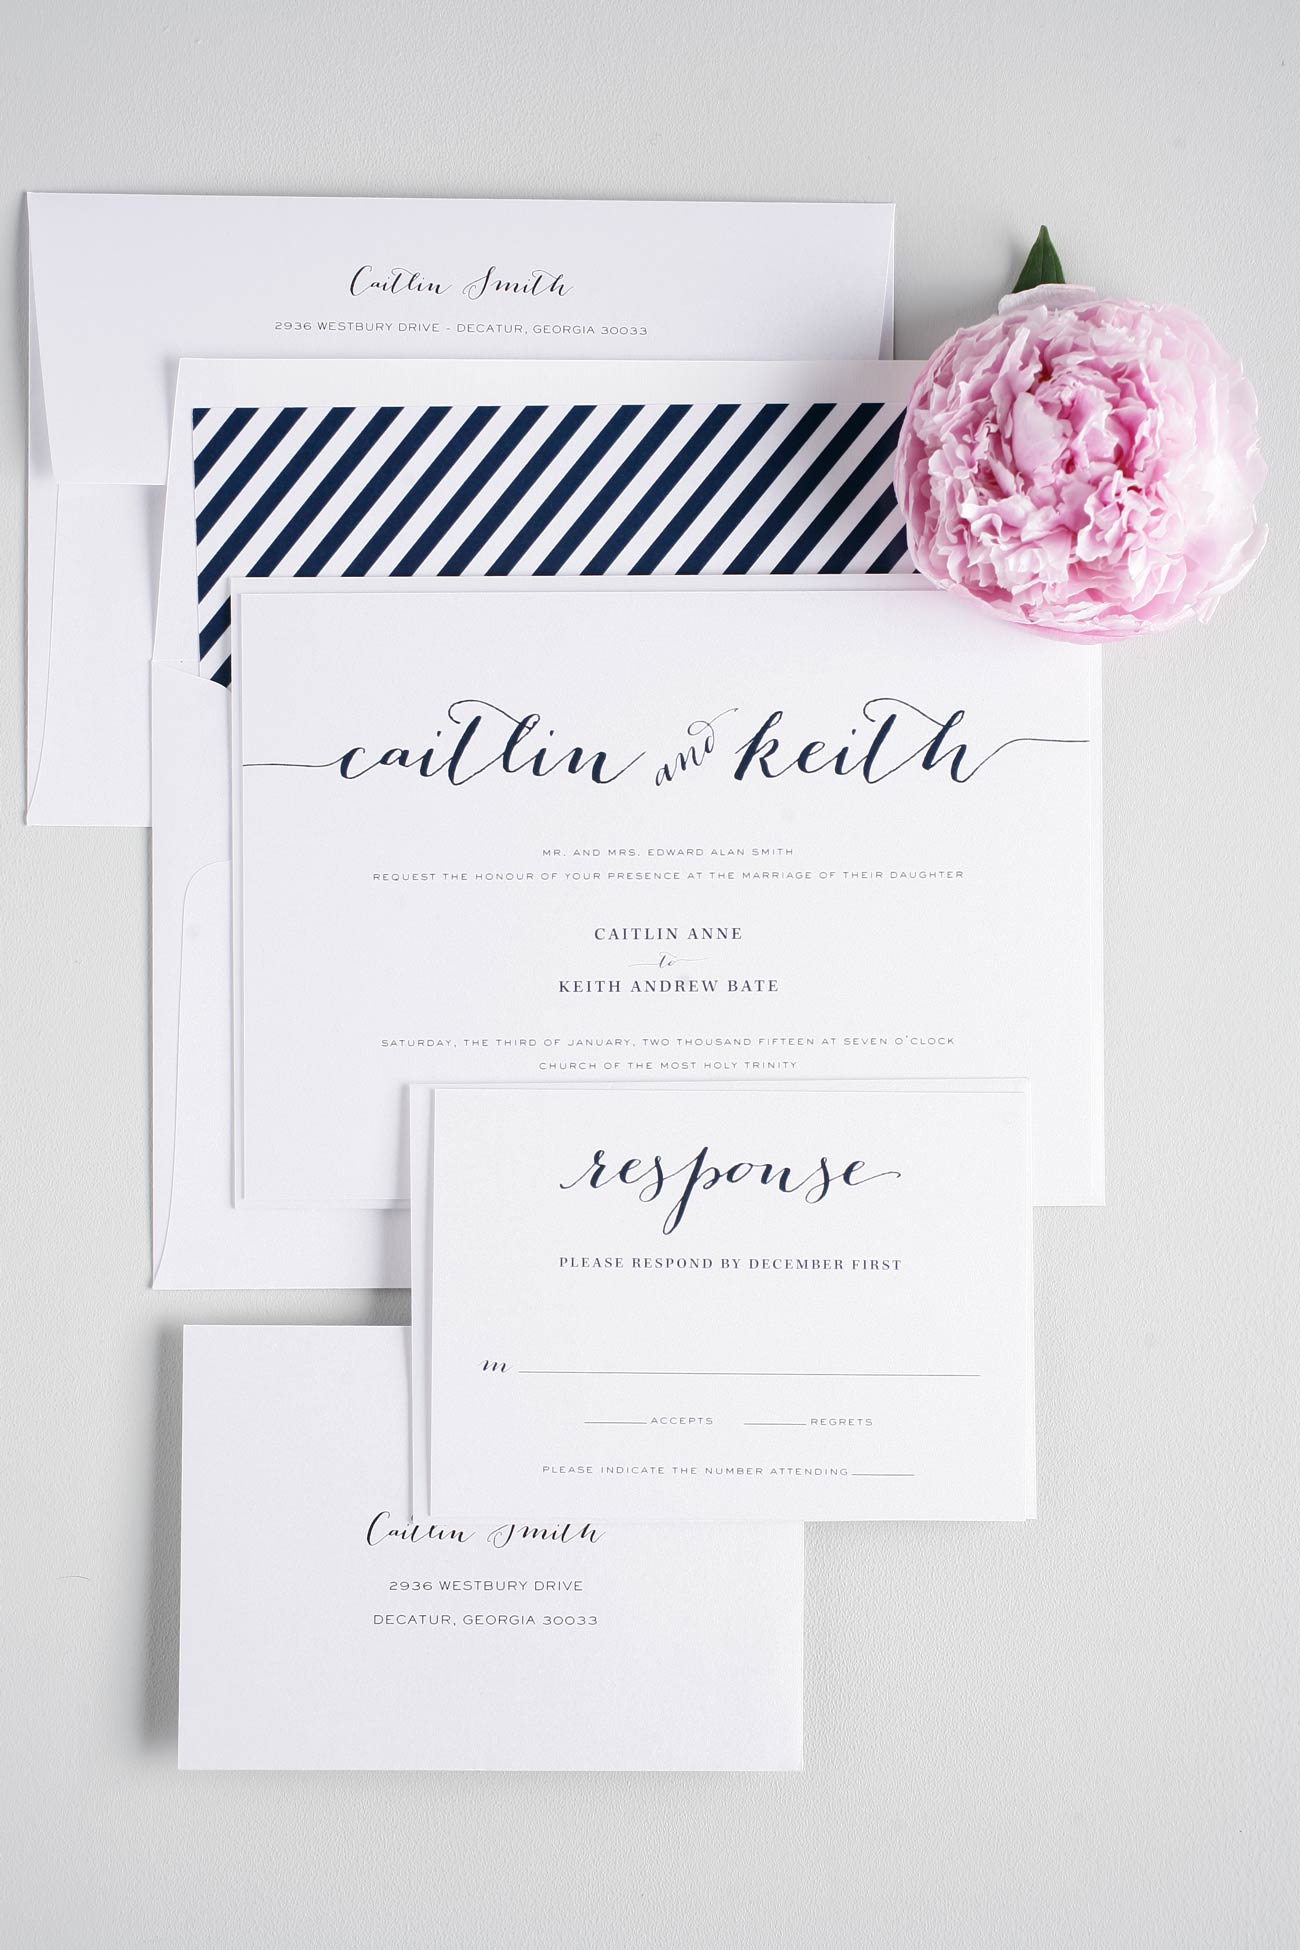 Flowing Script Wedding Invitations